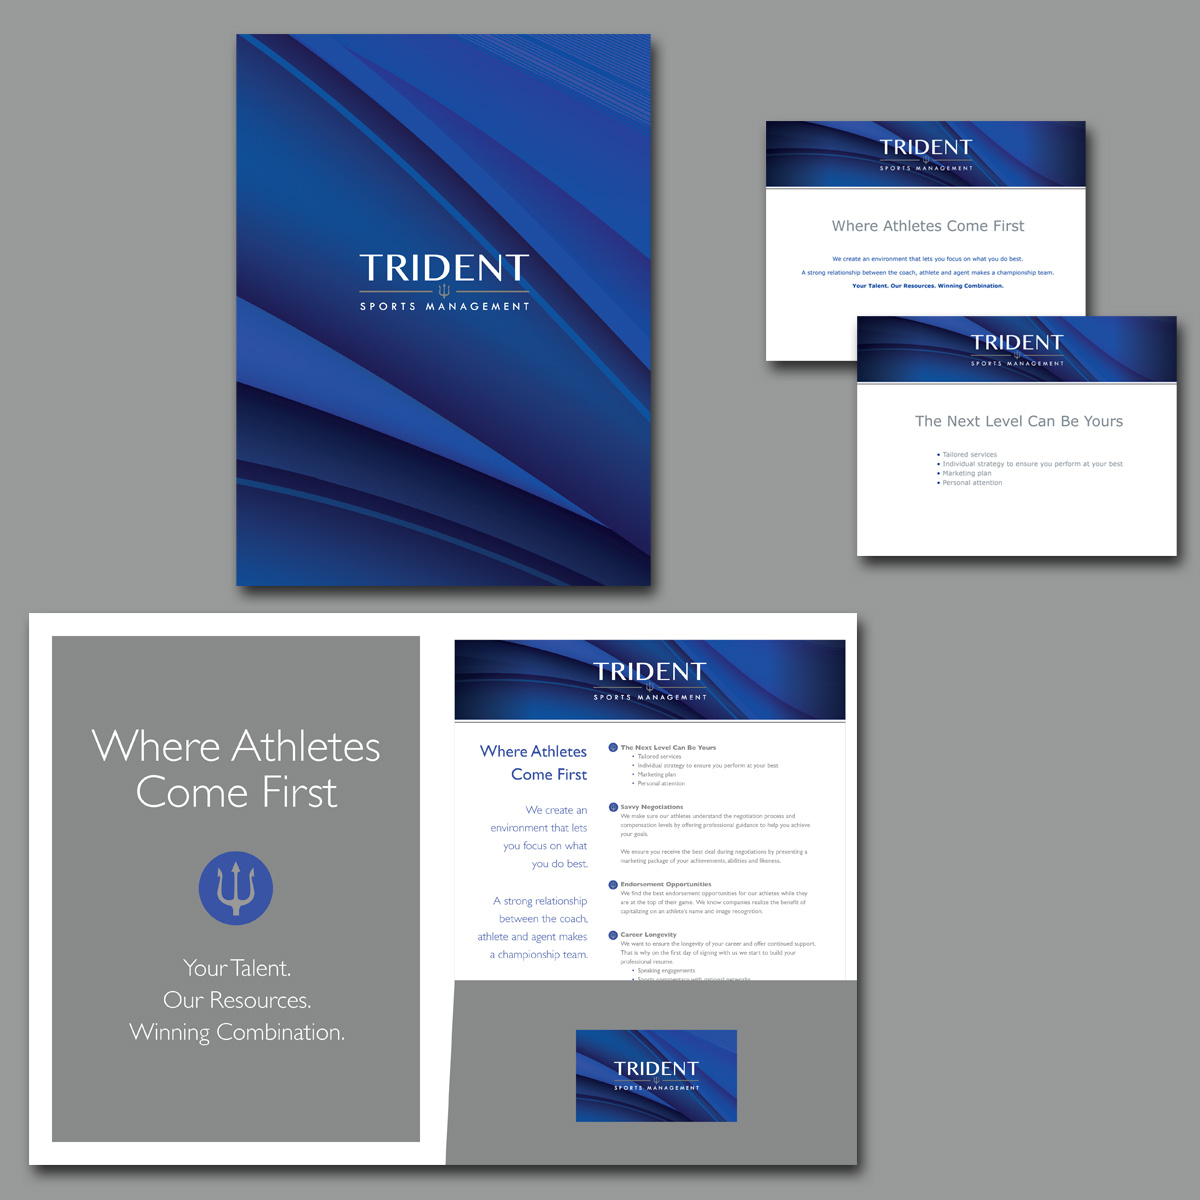 Creative Designer | Trident Sports Management